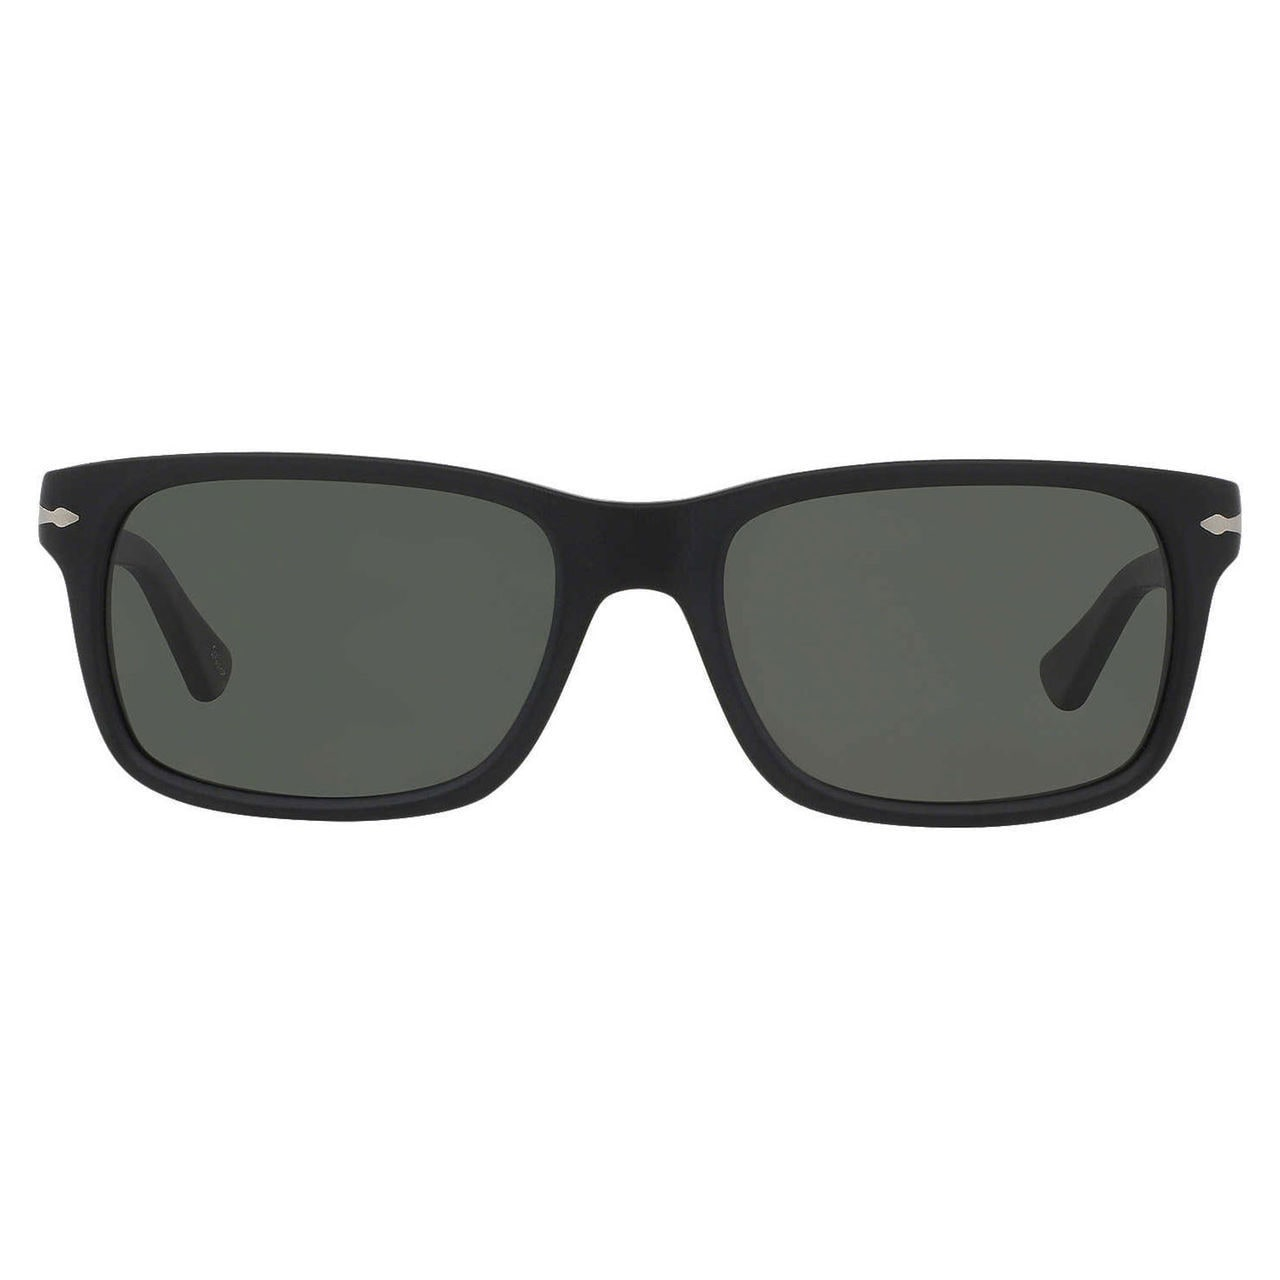 b6a449bb3c Shop Persol Men s PO3048S Plastic Rectangle Polarized Sunglasses - Black -  Large - Free Shipping Today - Overstock - 10456382